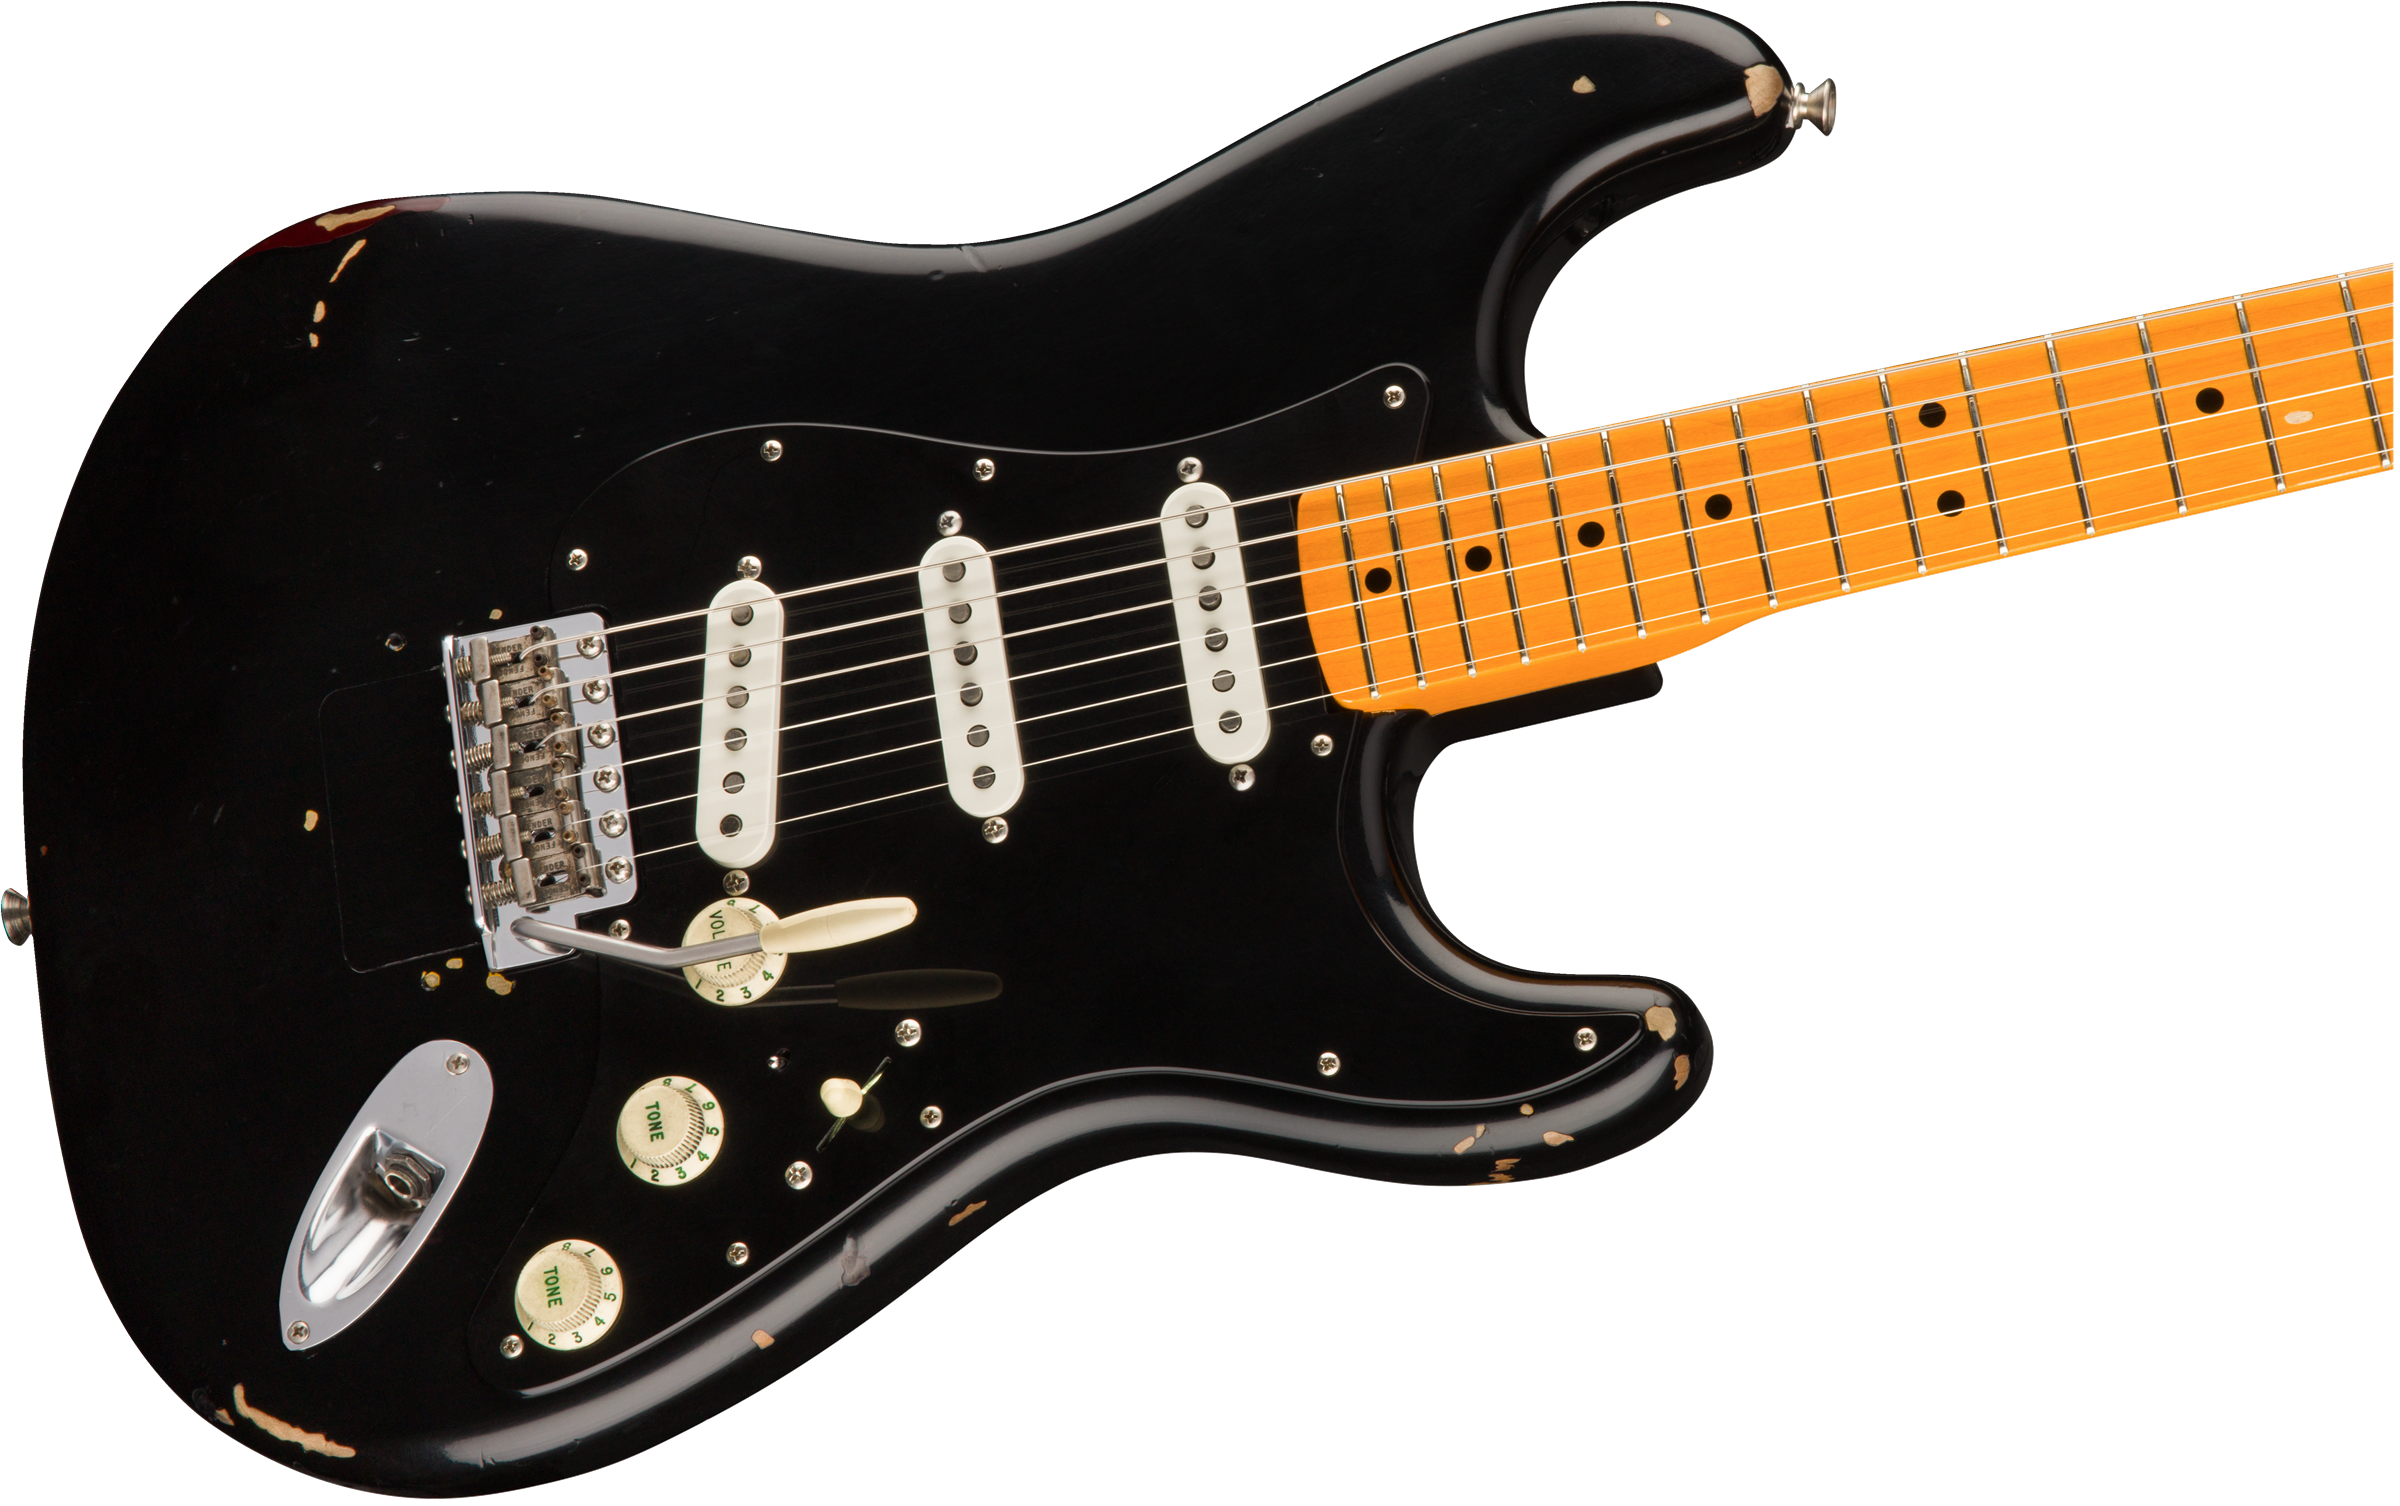 david gilmour black strat specs with David Gilmour Signature Stratocaster Relic Maple Fingerboard Black on 526455 Fender Stratocaster David Gilmour Black in addition 652839 Fender Road Worn 50s Stratocaster 2010 Black David Gilmour Mods And Custom Shop Fat 50 S Pickups as well Rat Rod Body as well David Gilmour Signature Stratocaster Relic Maple Fingerboard Black besides 584141 Electric City Pickups Rd 59 Set.